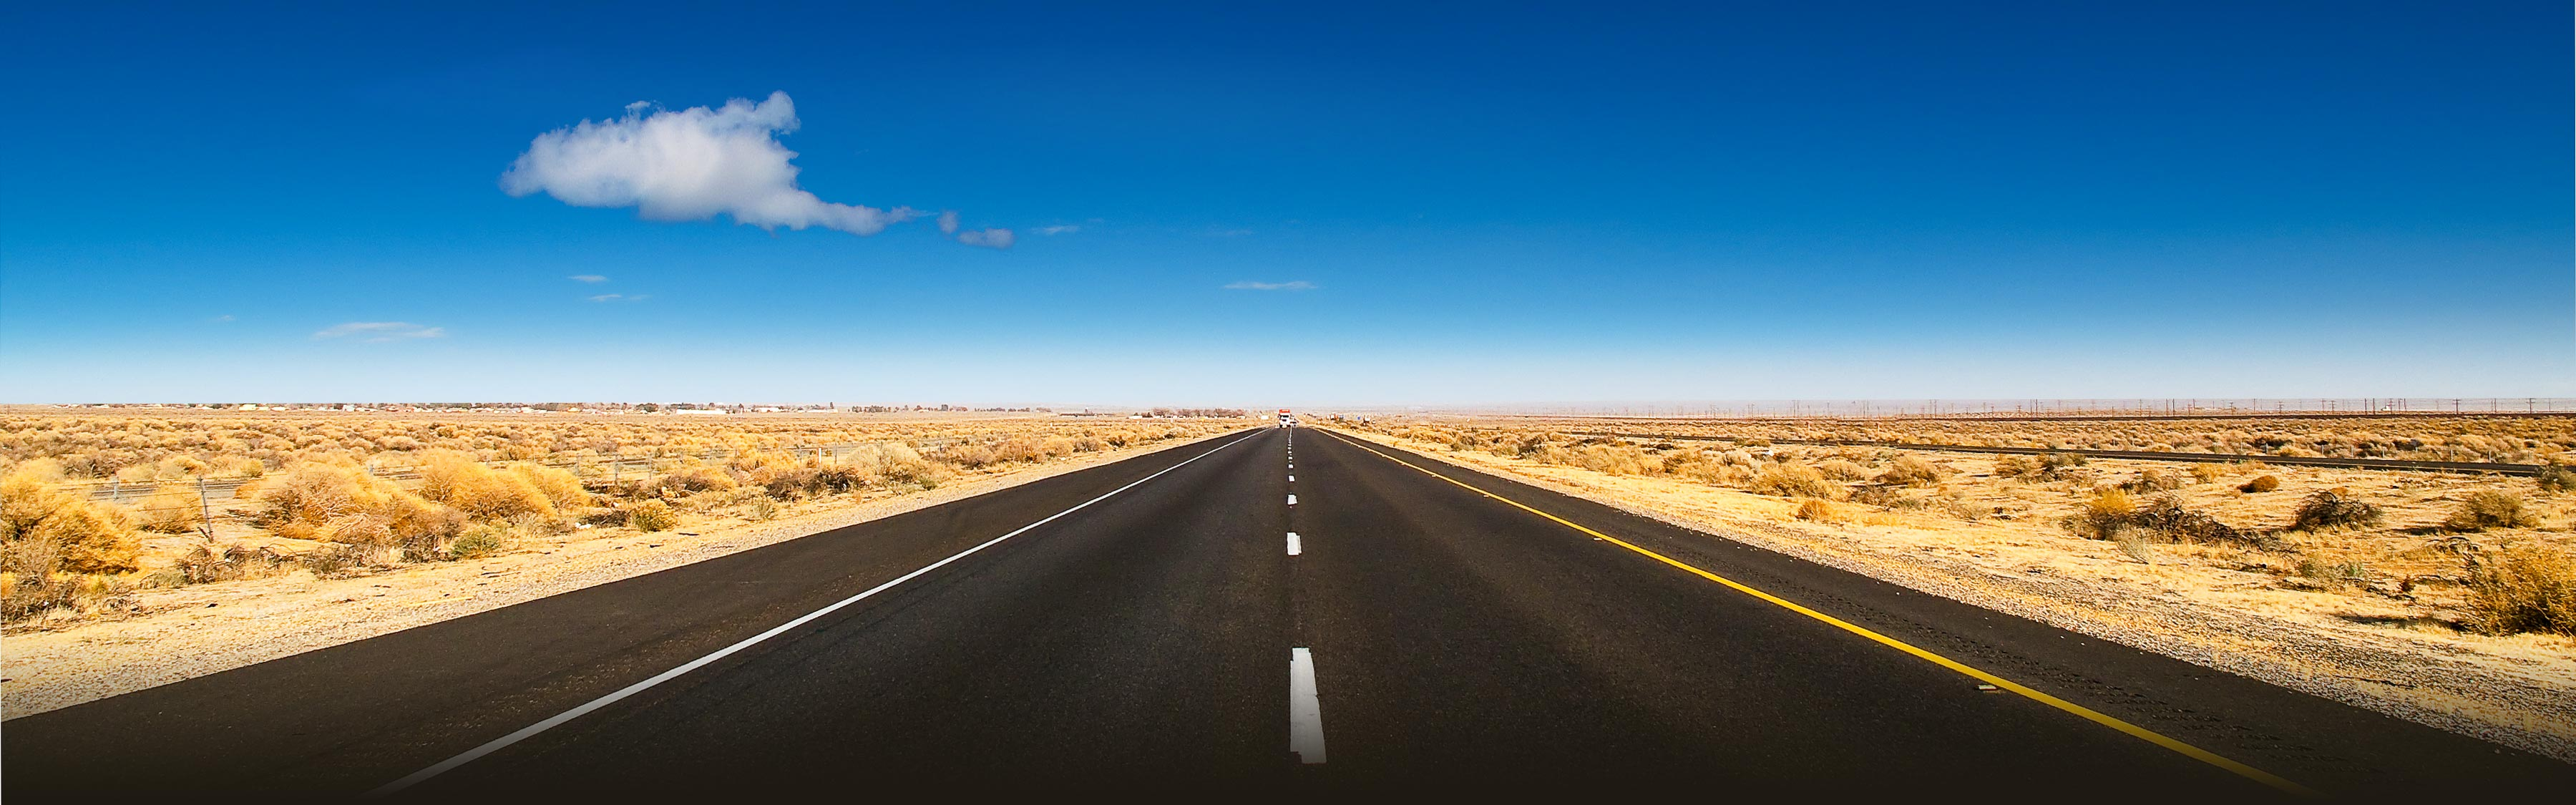 Neverending-highway-blog-header2